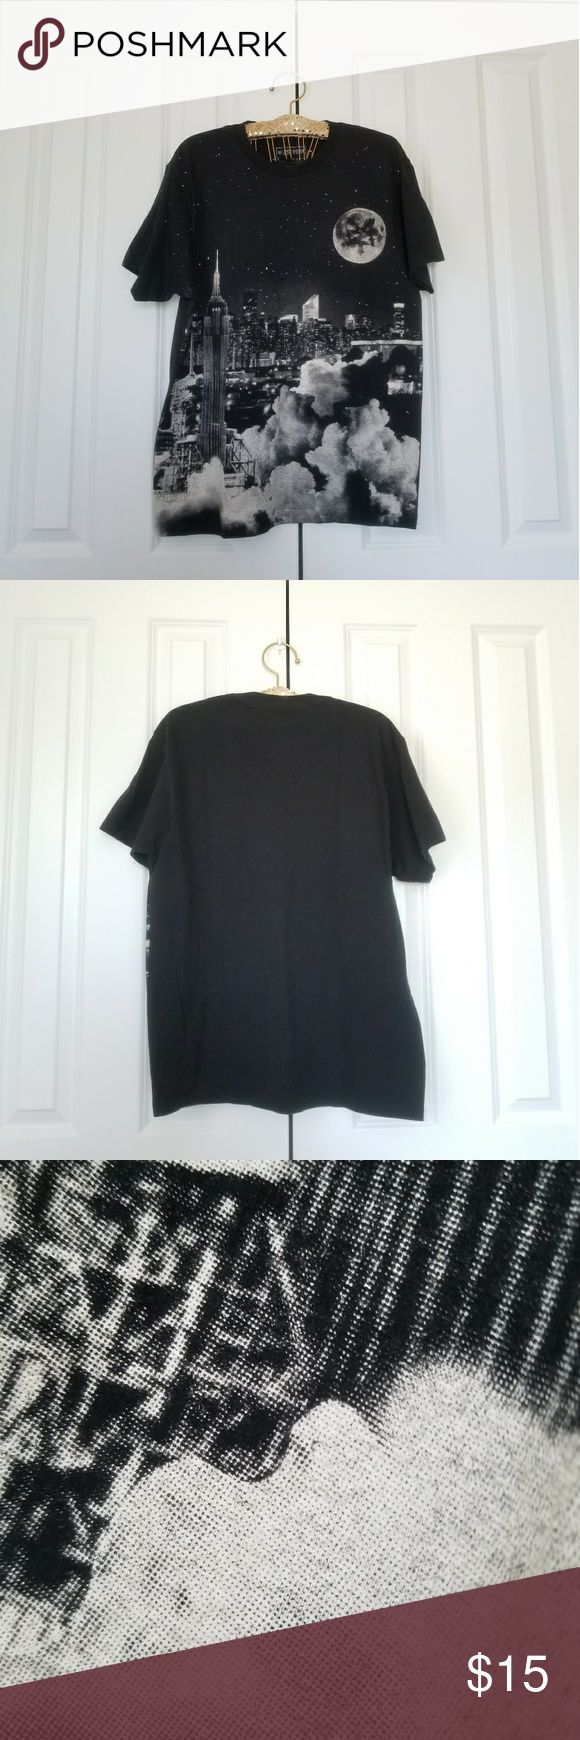 "Zoo York Black City View Short Sleeve Top In good condition with a little fading. Size is large. Measures 20.5"" across the chest, 8"" sleeve length, 28.5"" length.   No trades. If you have any questions please ask.  Please use the offer button to negotiate.  Have an amazing day! Happy Poshing! Zoo York Shirts Tees - Short Sleeve"